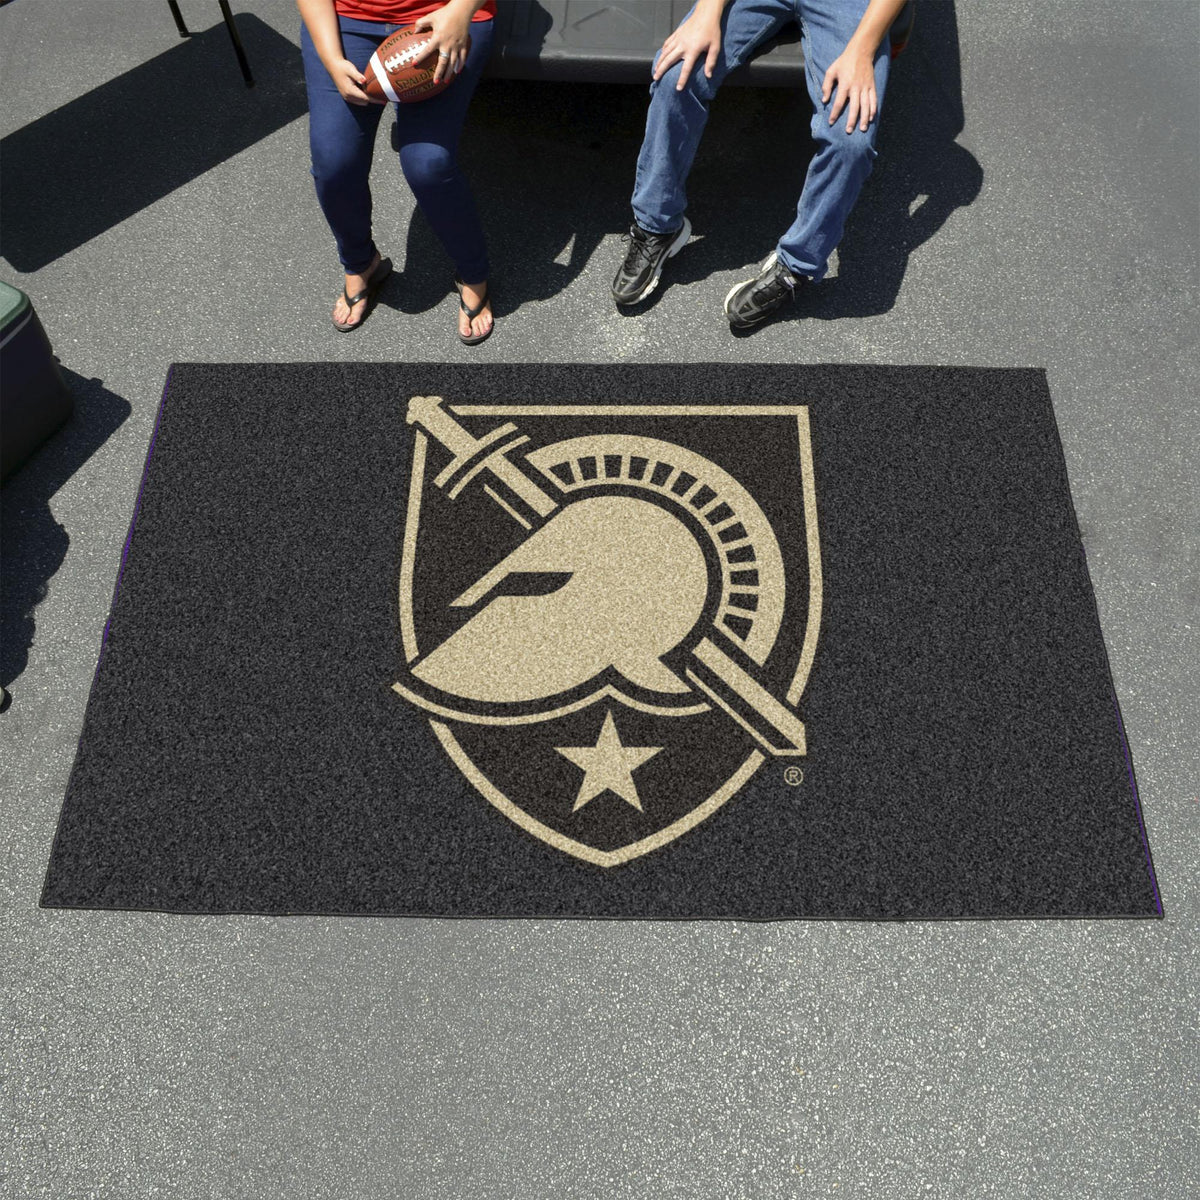 Collegiate - Ulti-Mat: A - L Collegiate Mats, Rectangular Mats, Ulti-Mat, Collegiate, Home Fan Mats Army West Point